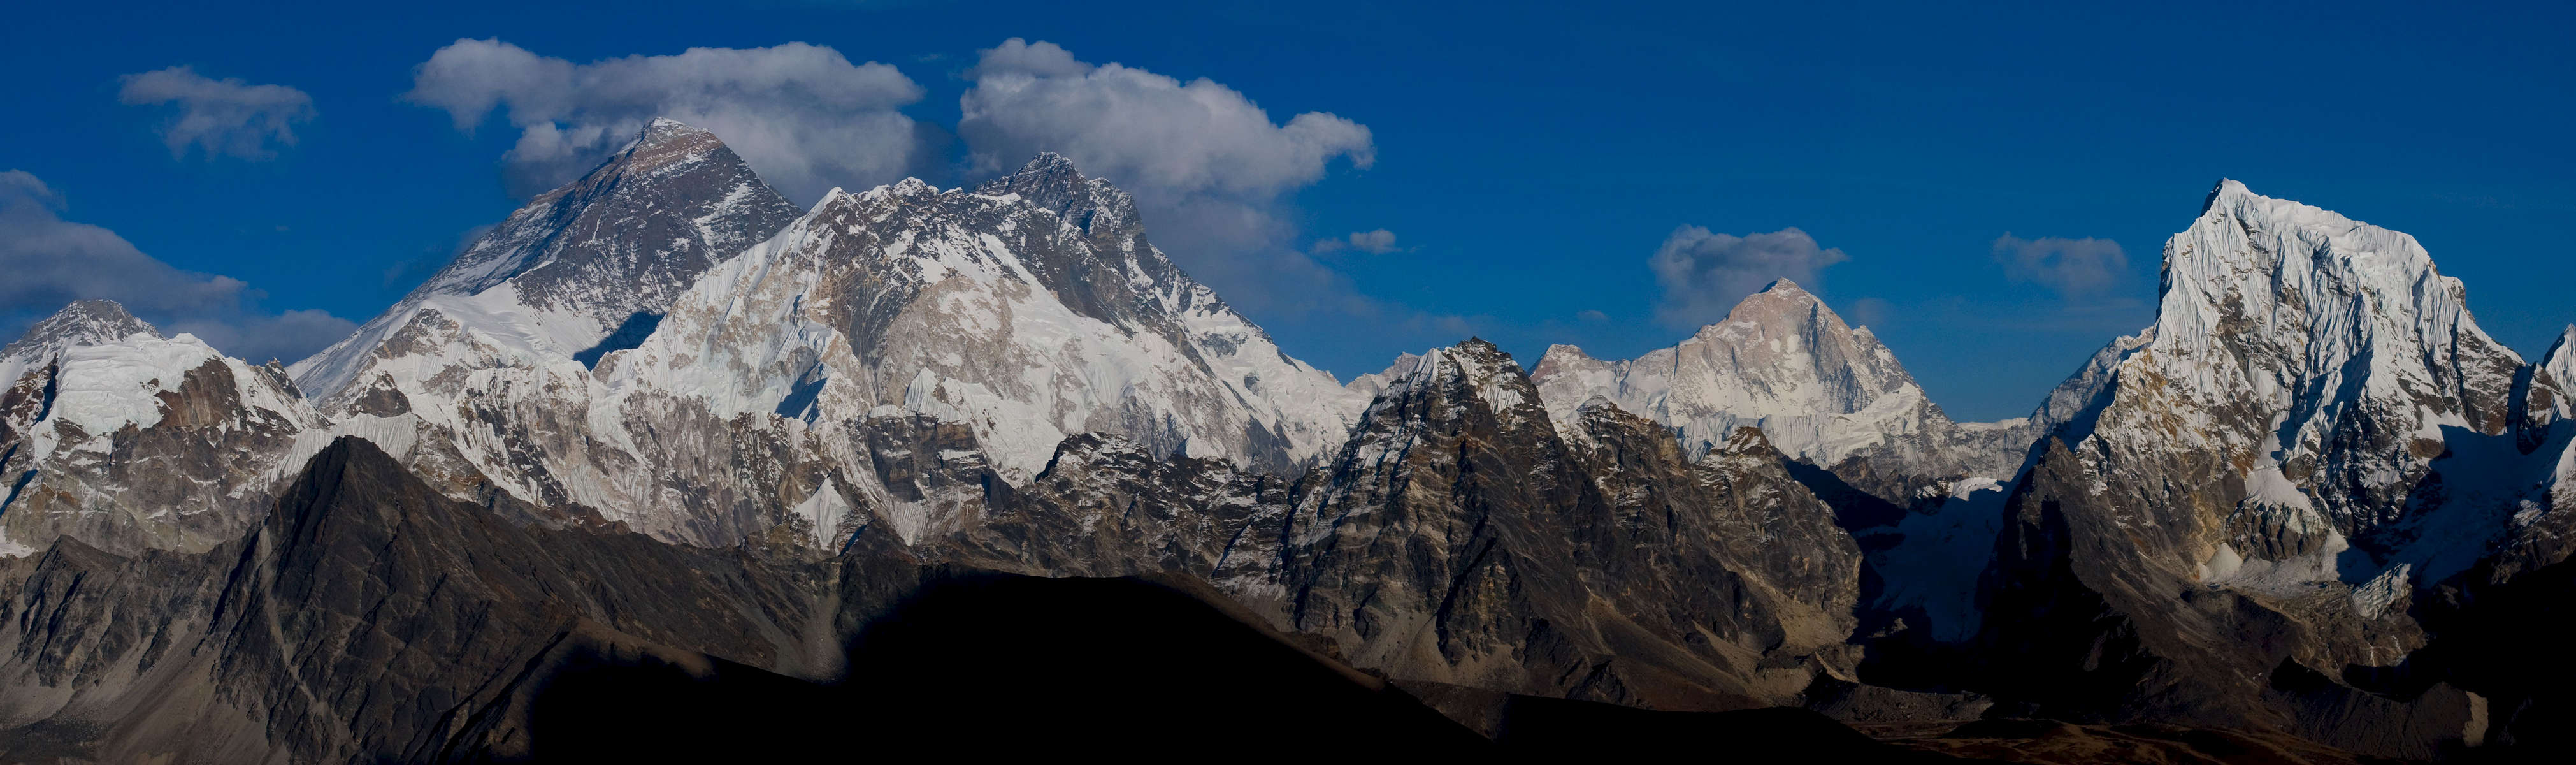 Everest, Nuptse, Lhotse, Makalu & Cholatse seen late in the afternoon from this 5345m pass. Taken mid December when the air is crystal clear, the detail is incredible.Nikon D300, 50mm